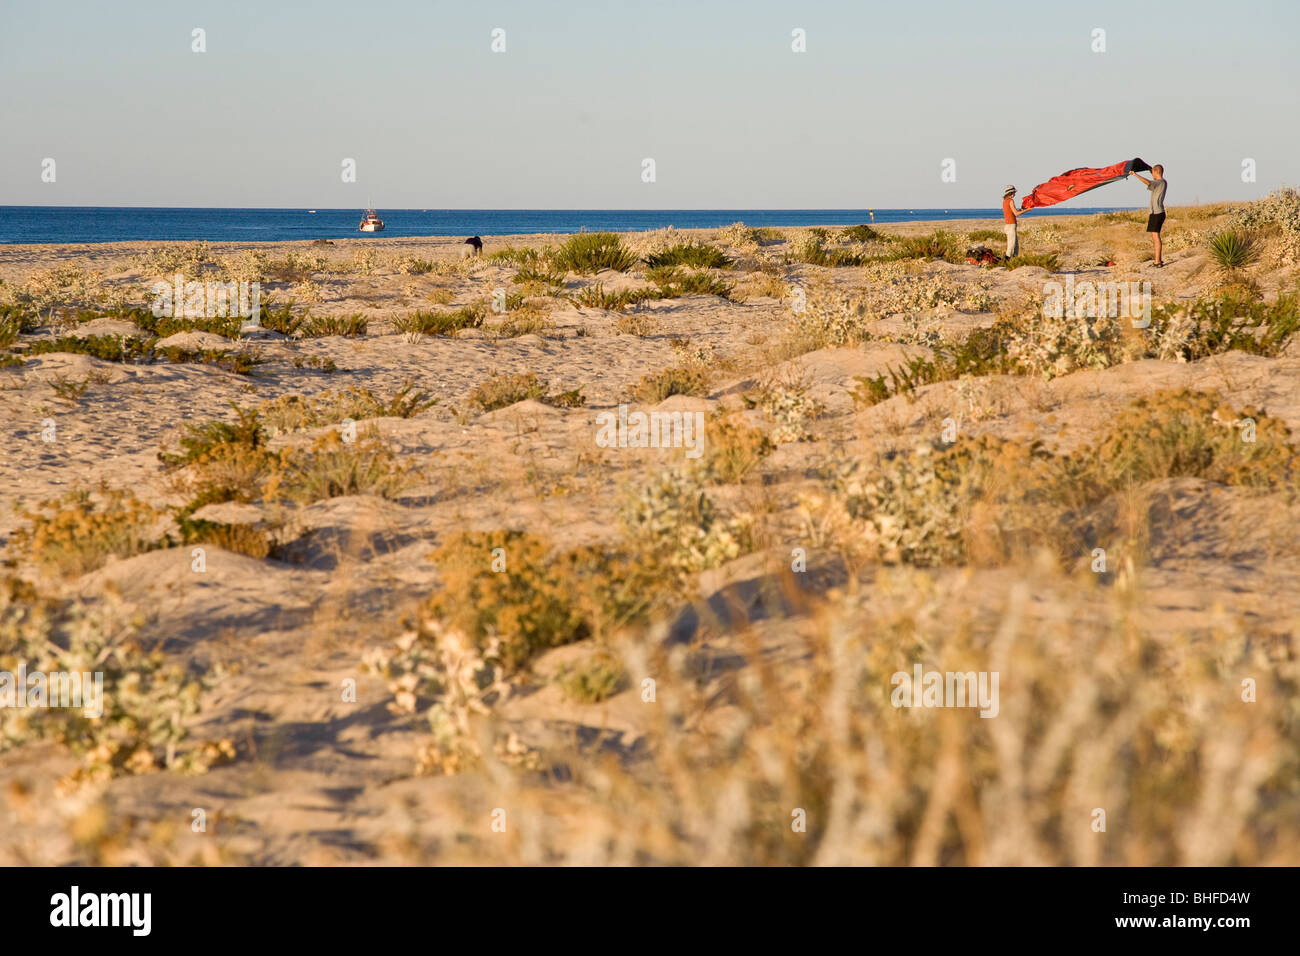 Two person folding up their red tent, Morning light, camping on the beach, beach on the Ilhe de Tavira, Tavira, - Stock Image